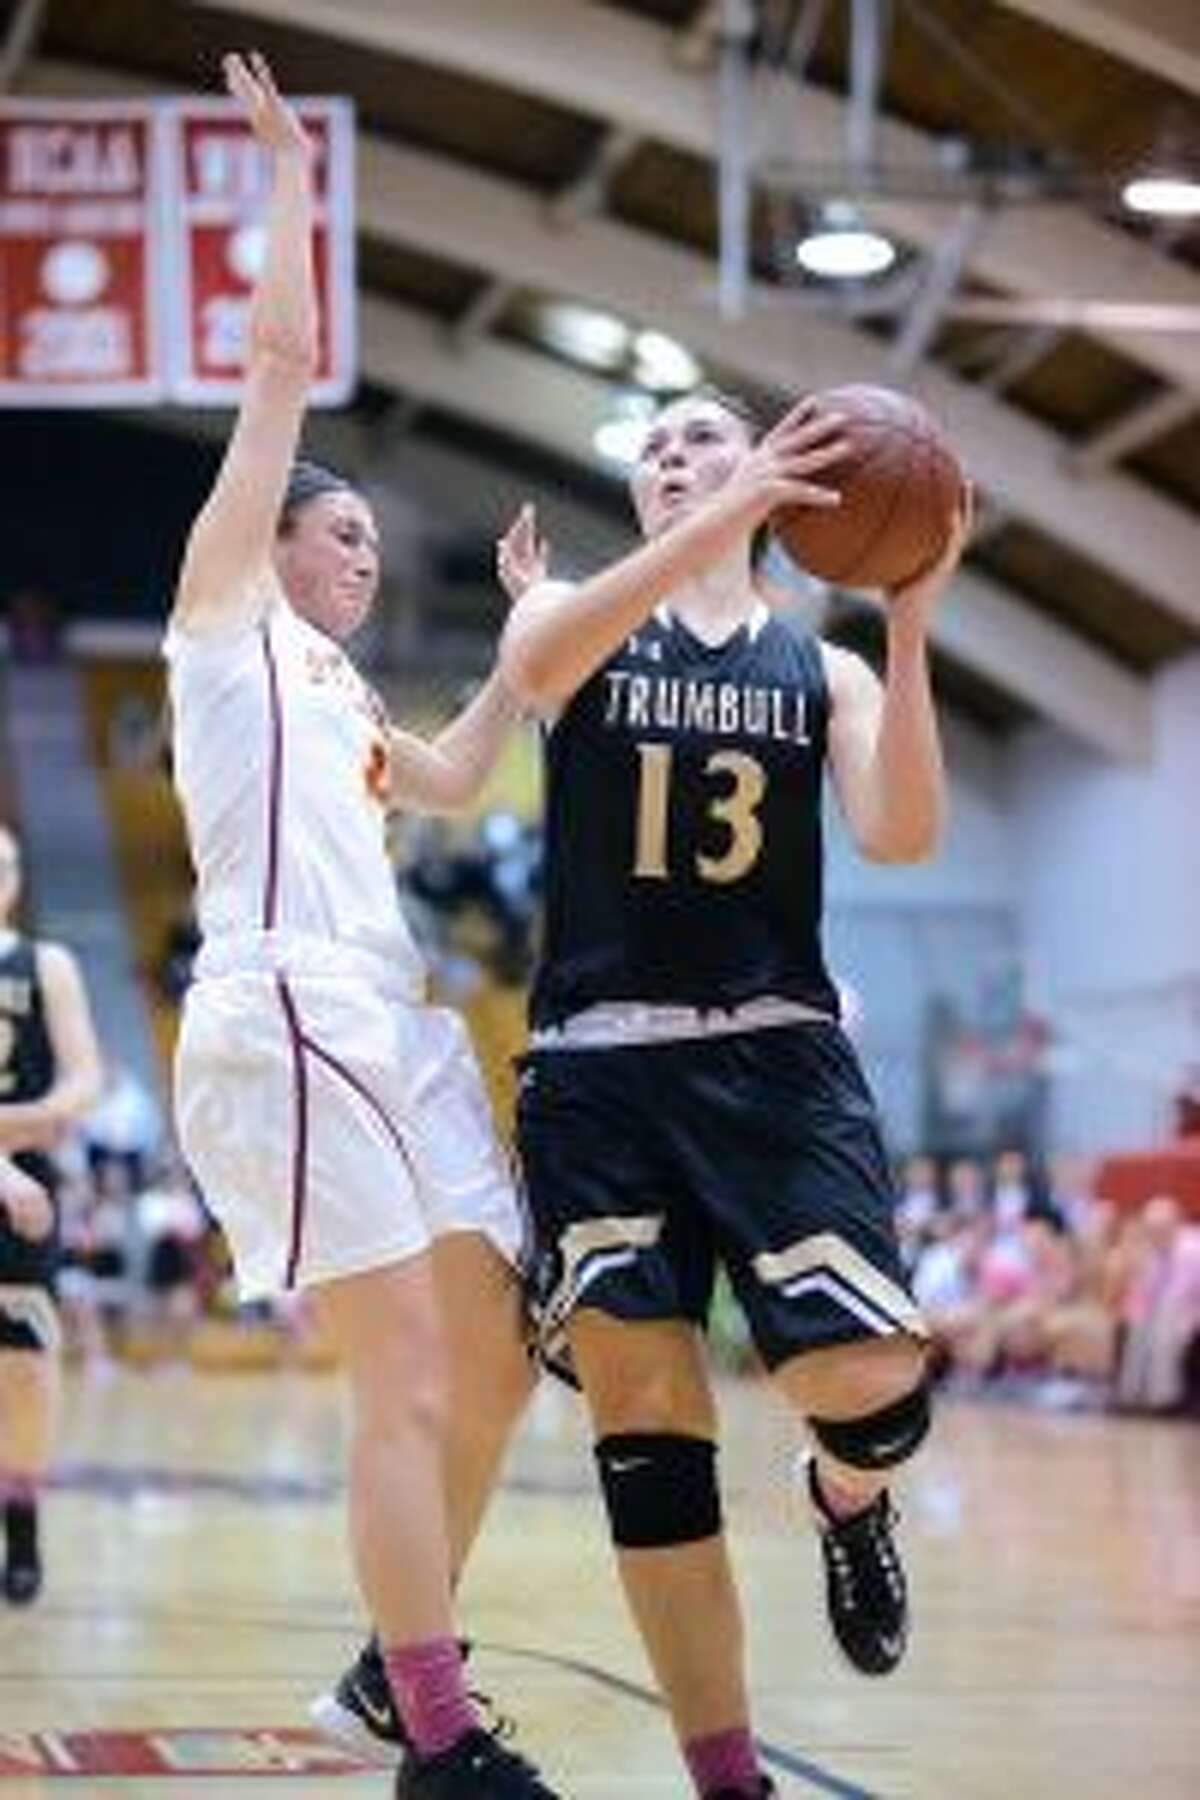 Claudia Tucci will lead Trumbull, which opens on Saturday with a quarterfinal game versus Staples.